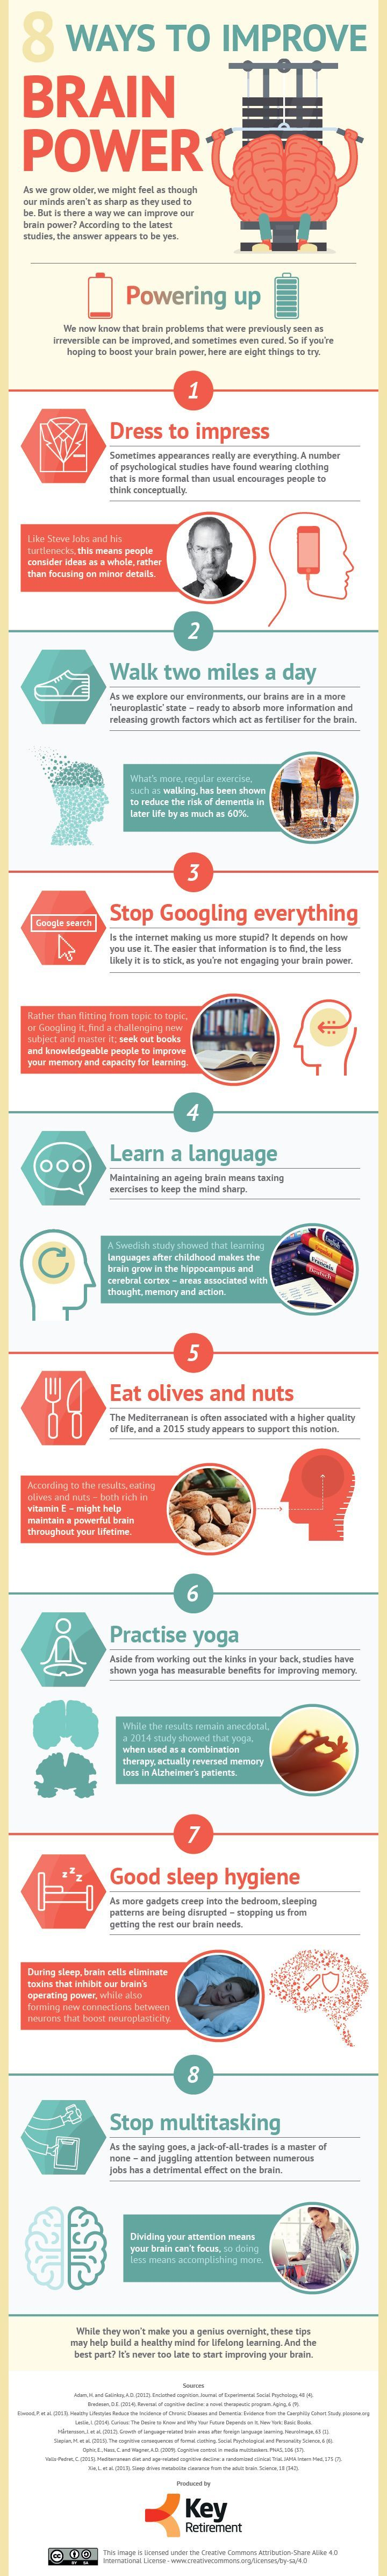 8 Ways To Improve Brain Power #Infographic #Brain #MentalHealth